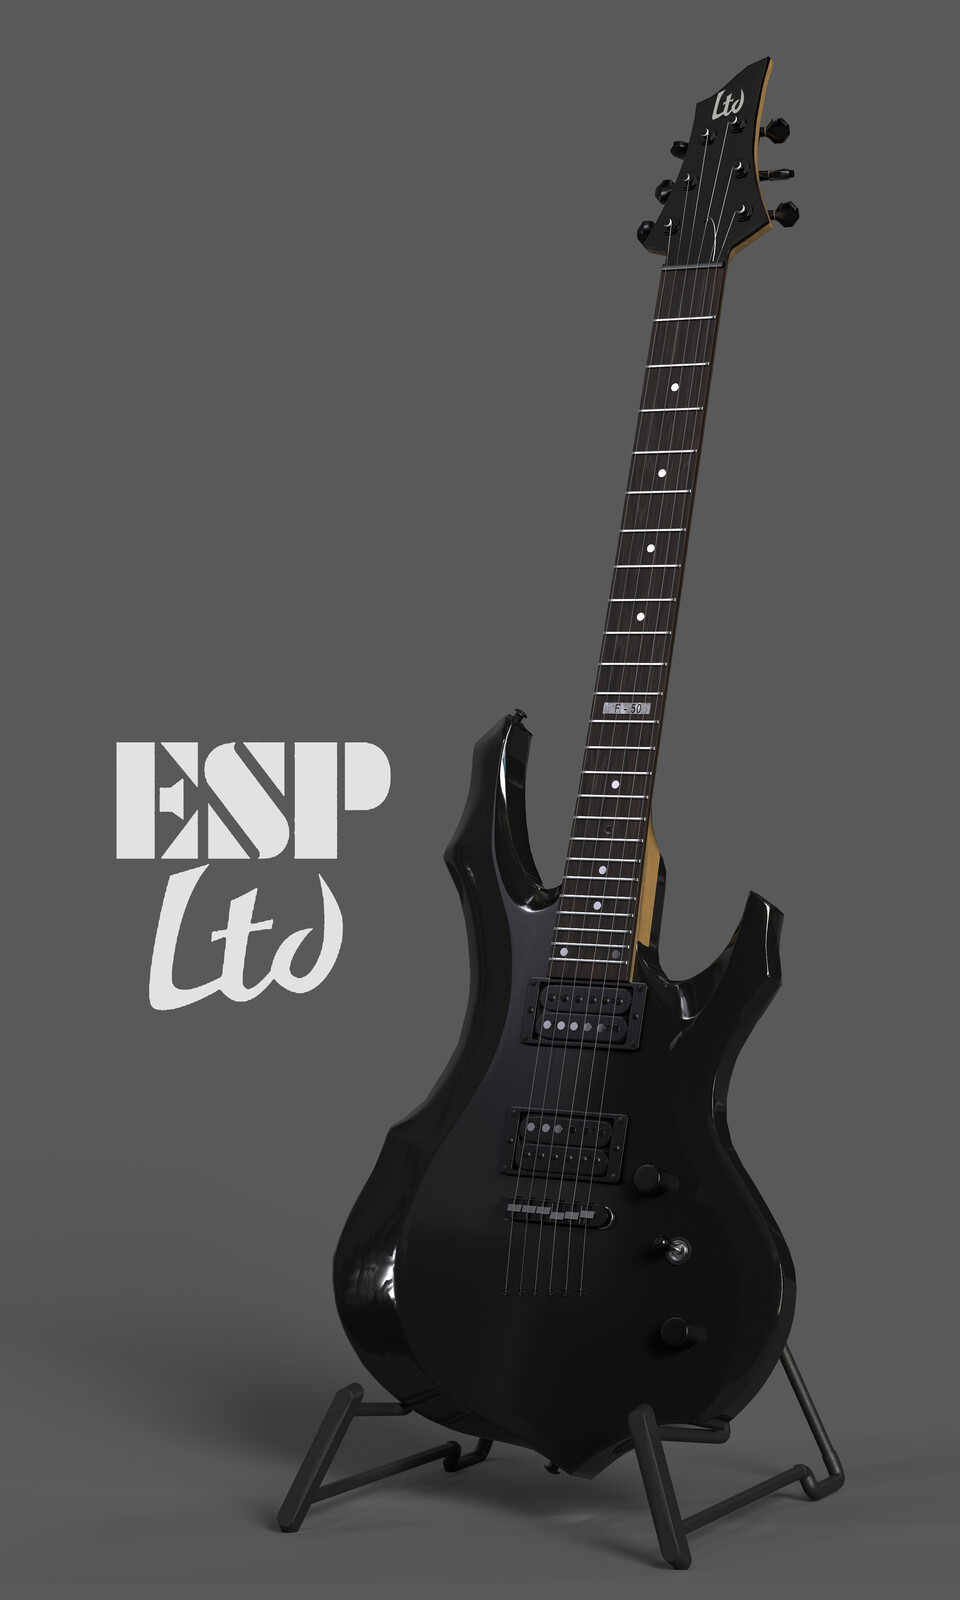 Guitar LTD ESP F-50